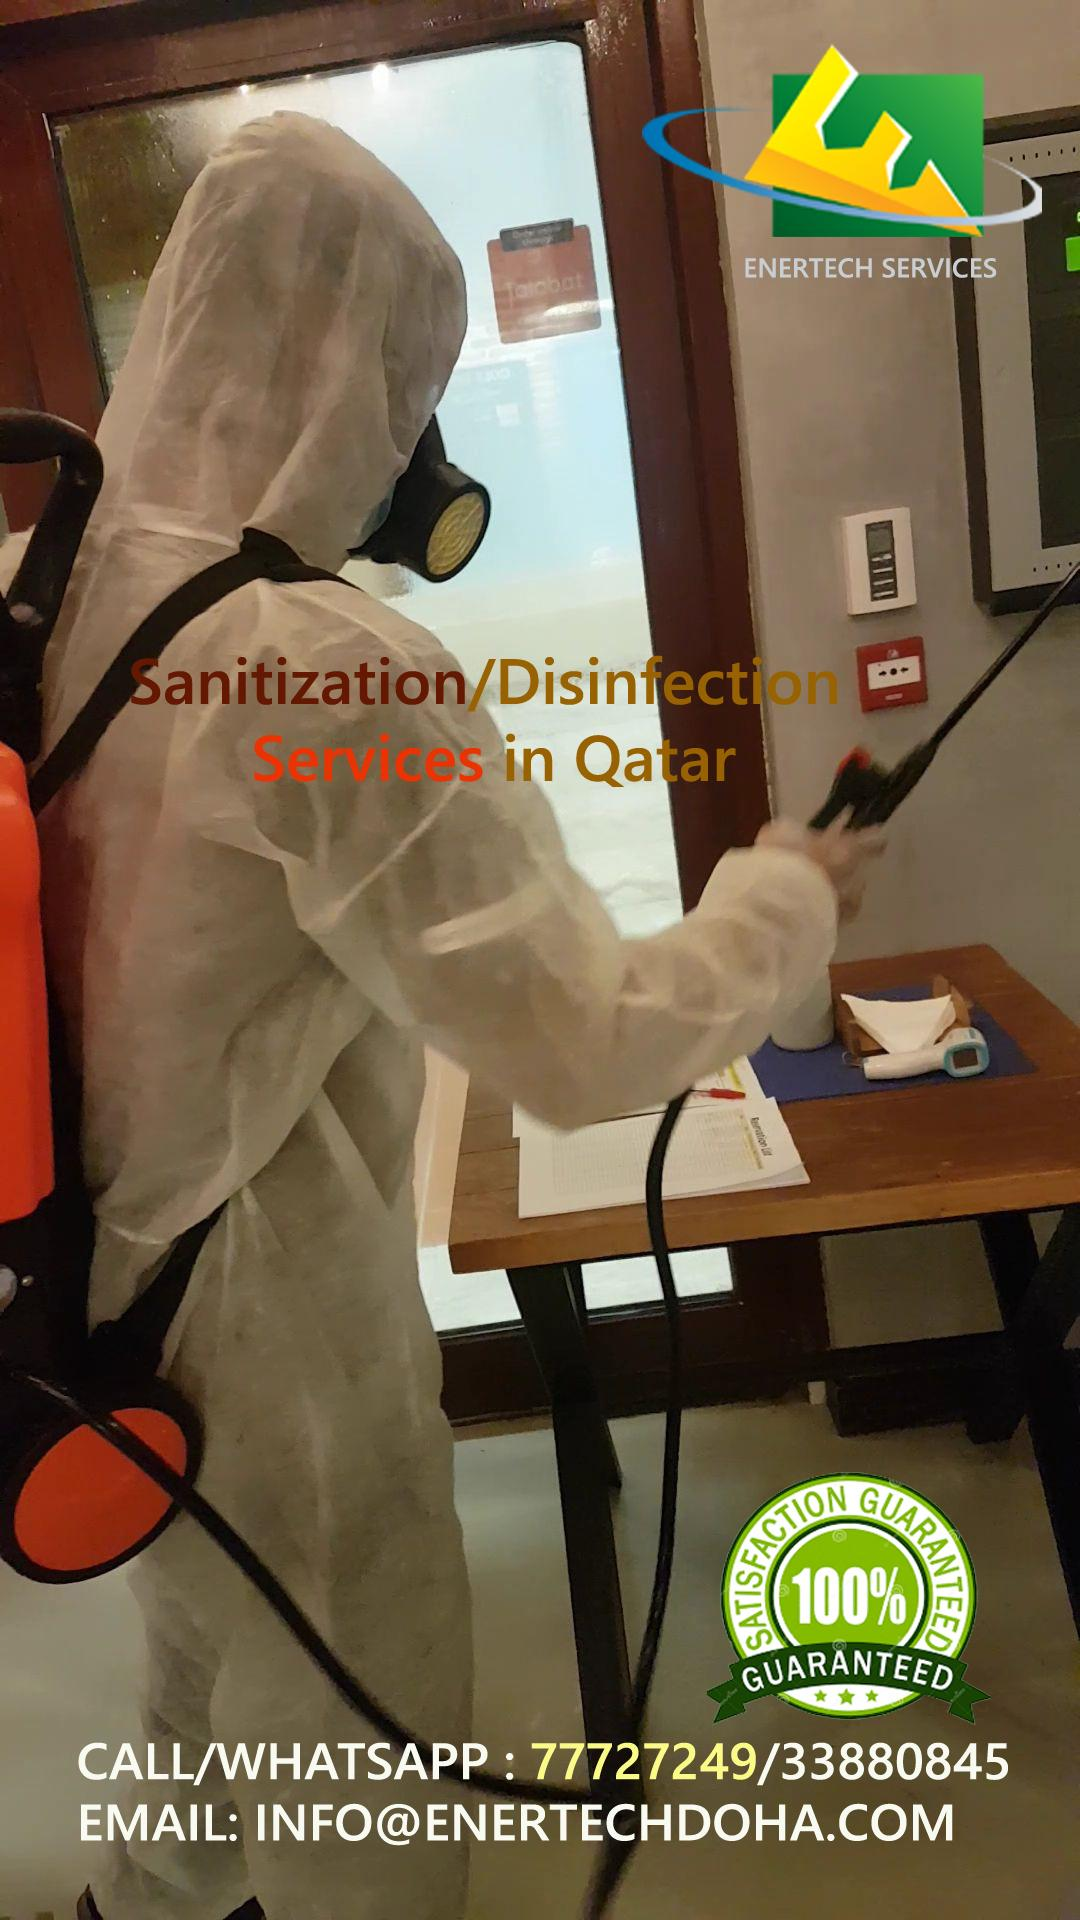 Sanitization - Disinfection Services in AL Khor